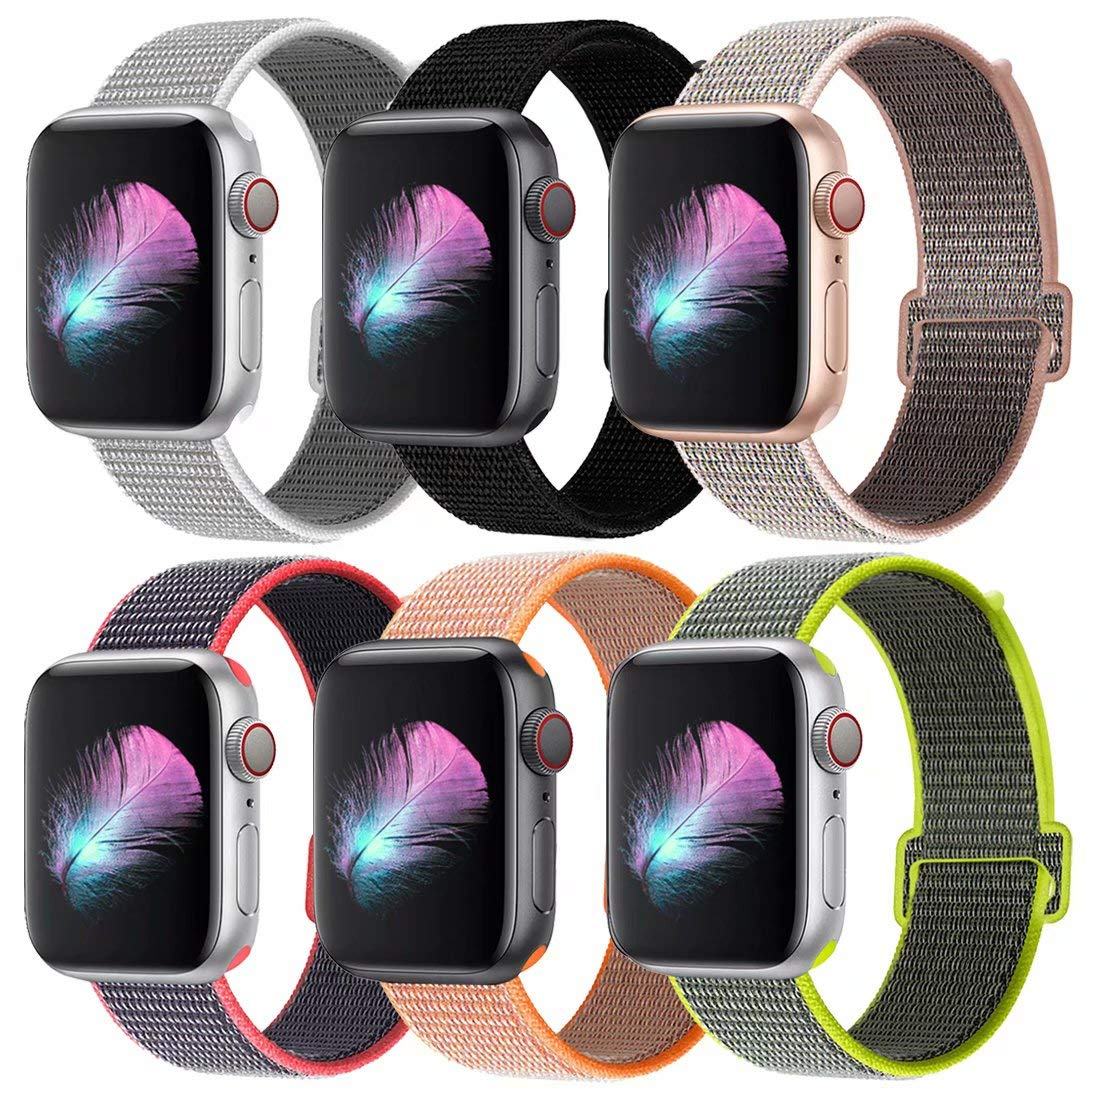 HILIMNY Compatible for Apple Watch Band 38mm 40mm, New Nylon Sport Loop, Adjustable Closure Wrist Strap, Replacement Band Compatible for iWatch Series 4 3 2 1(38mm 40mm, Muticolor)